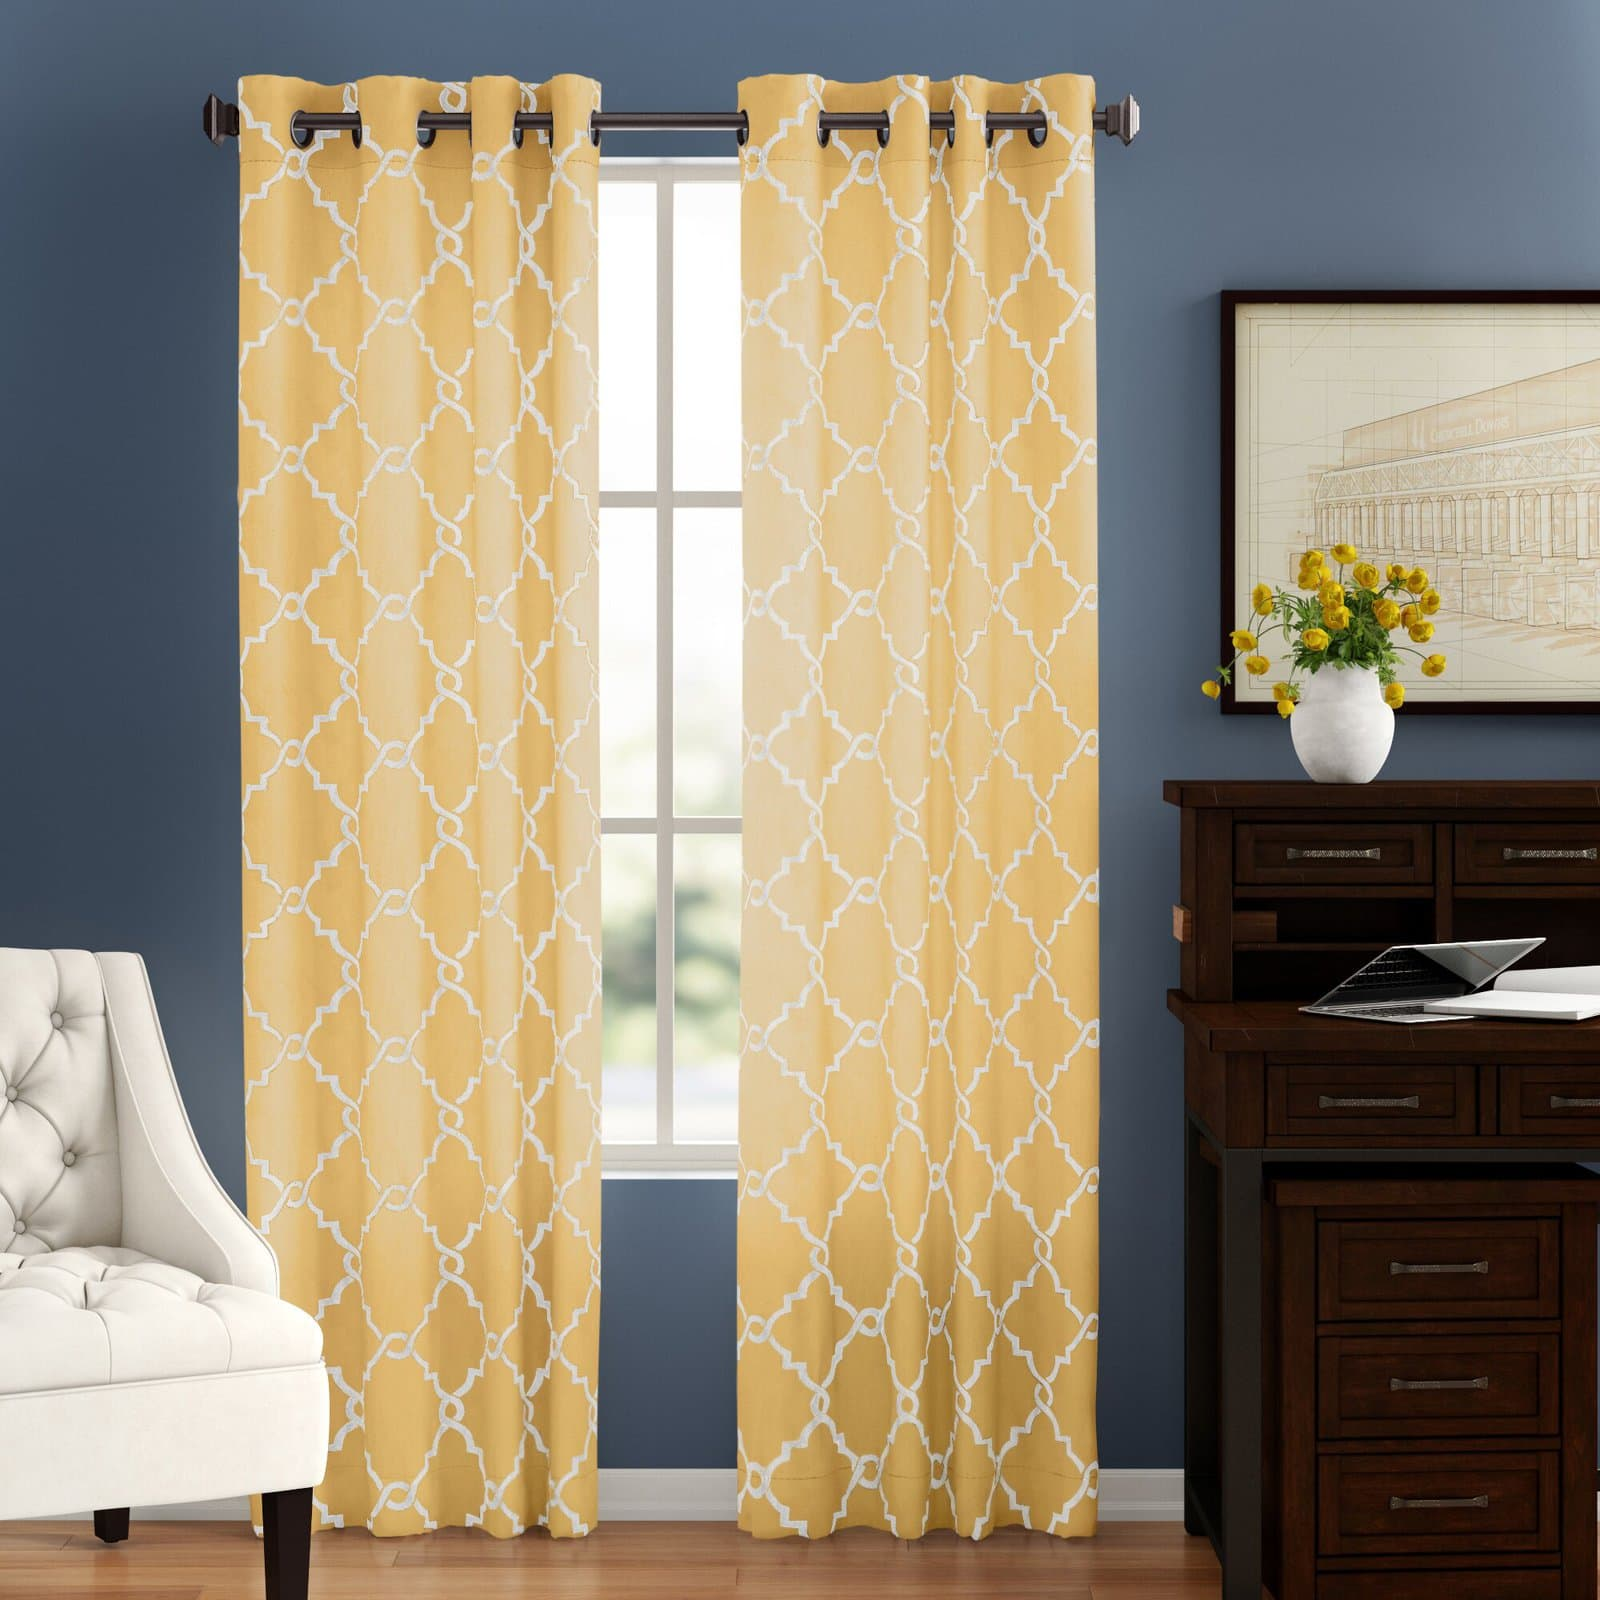 Zesty Lemon Yellow Curtains With Dark Blue Walls